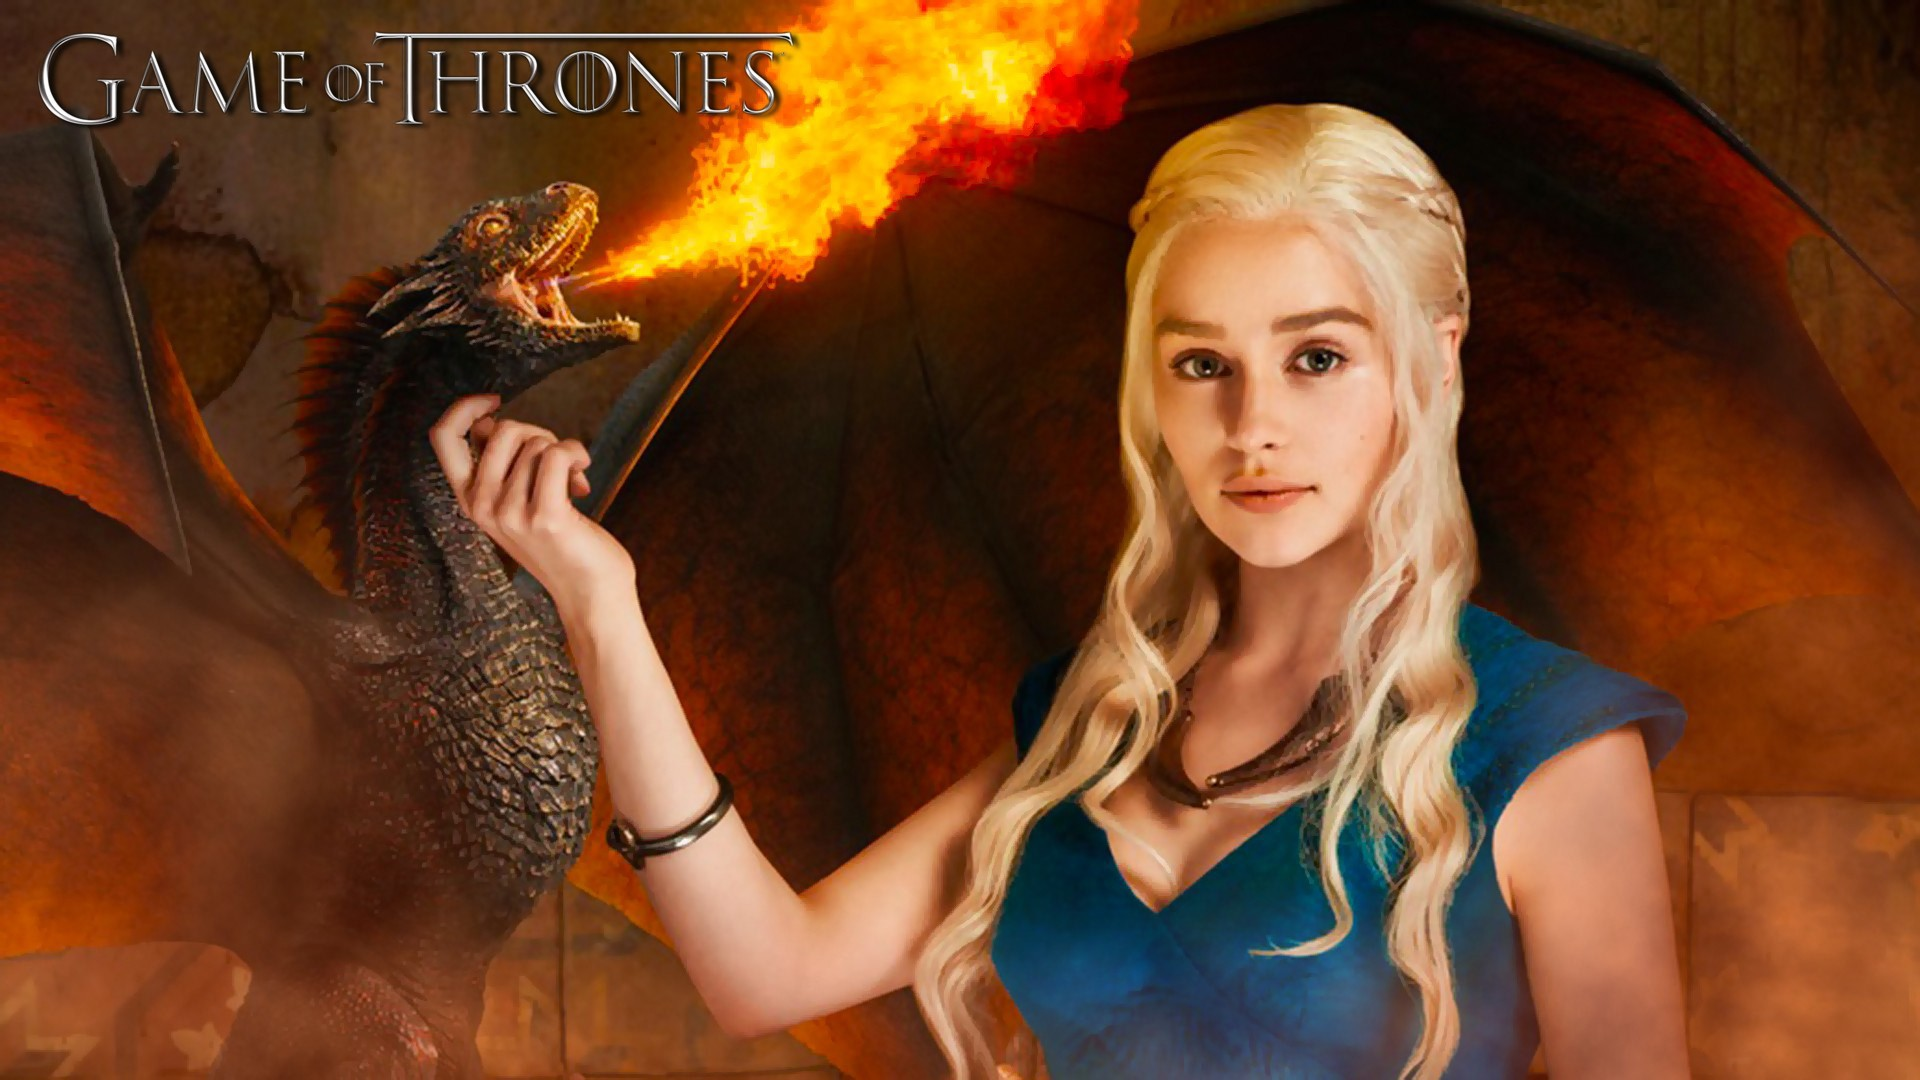 Game Of Thrones Daenerys With Dragons - HD Wallpaper